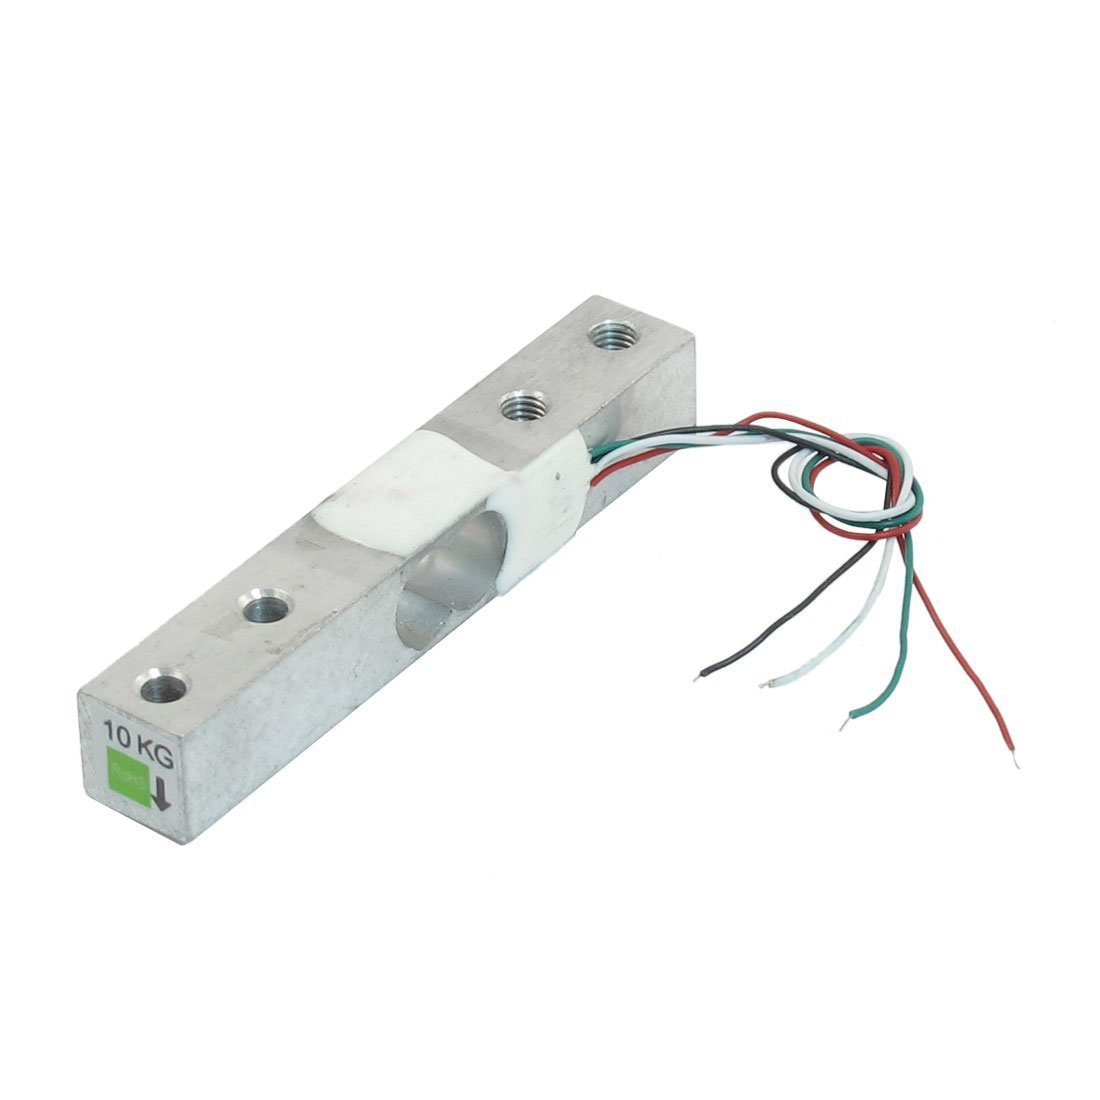 Electronic Weighing Scale Load Cell Sensor 0-10Kg uxcell US-SA-AJD-340615